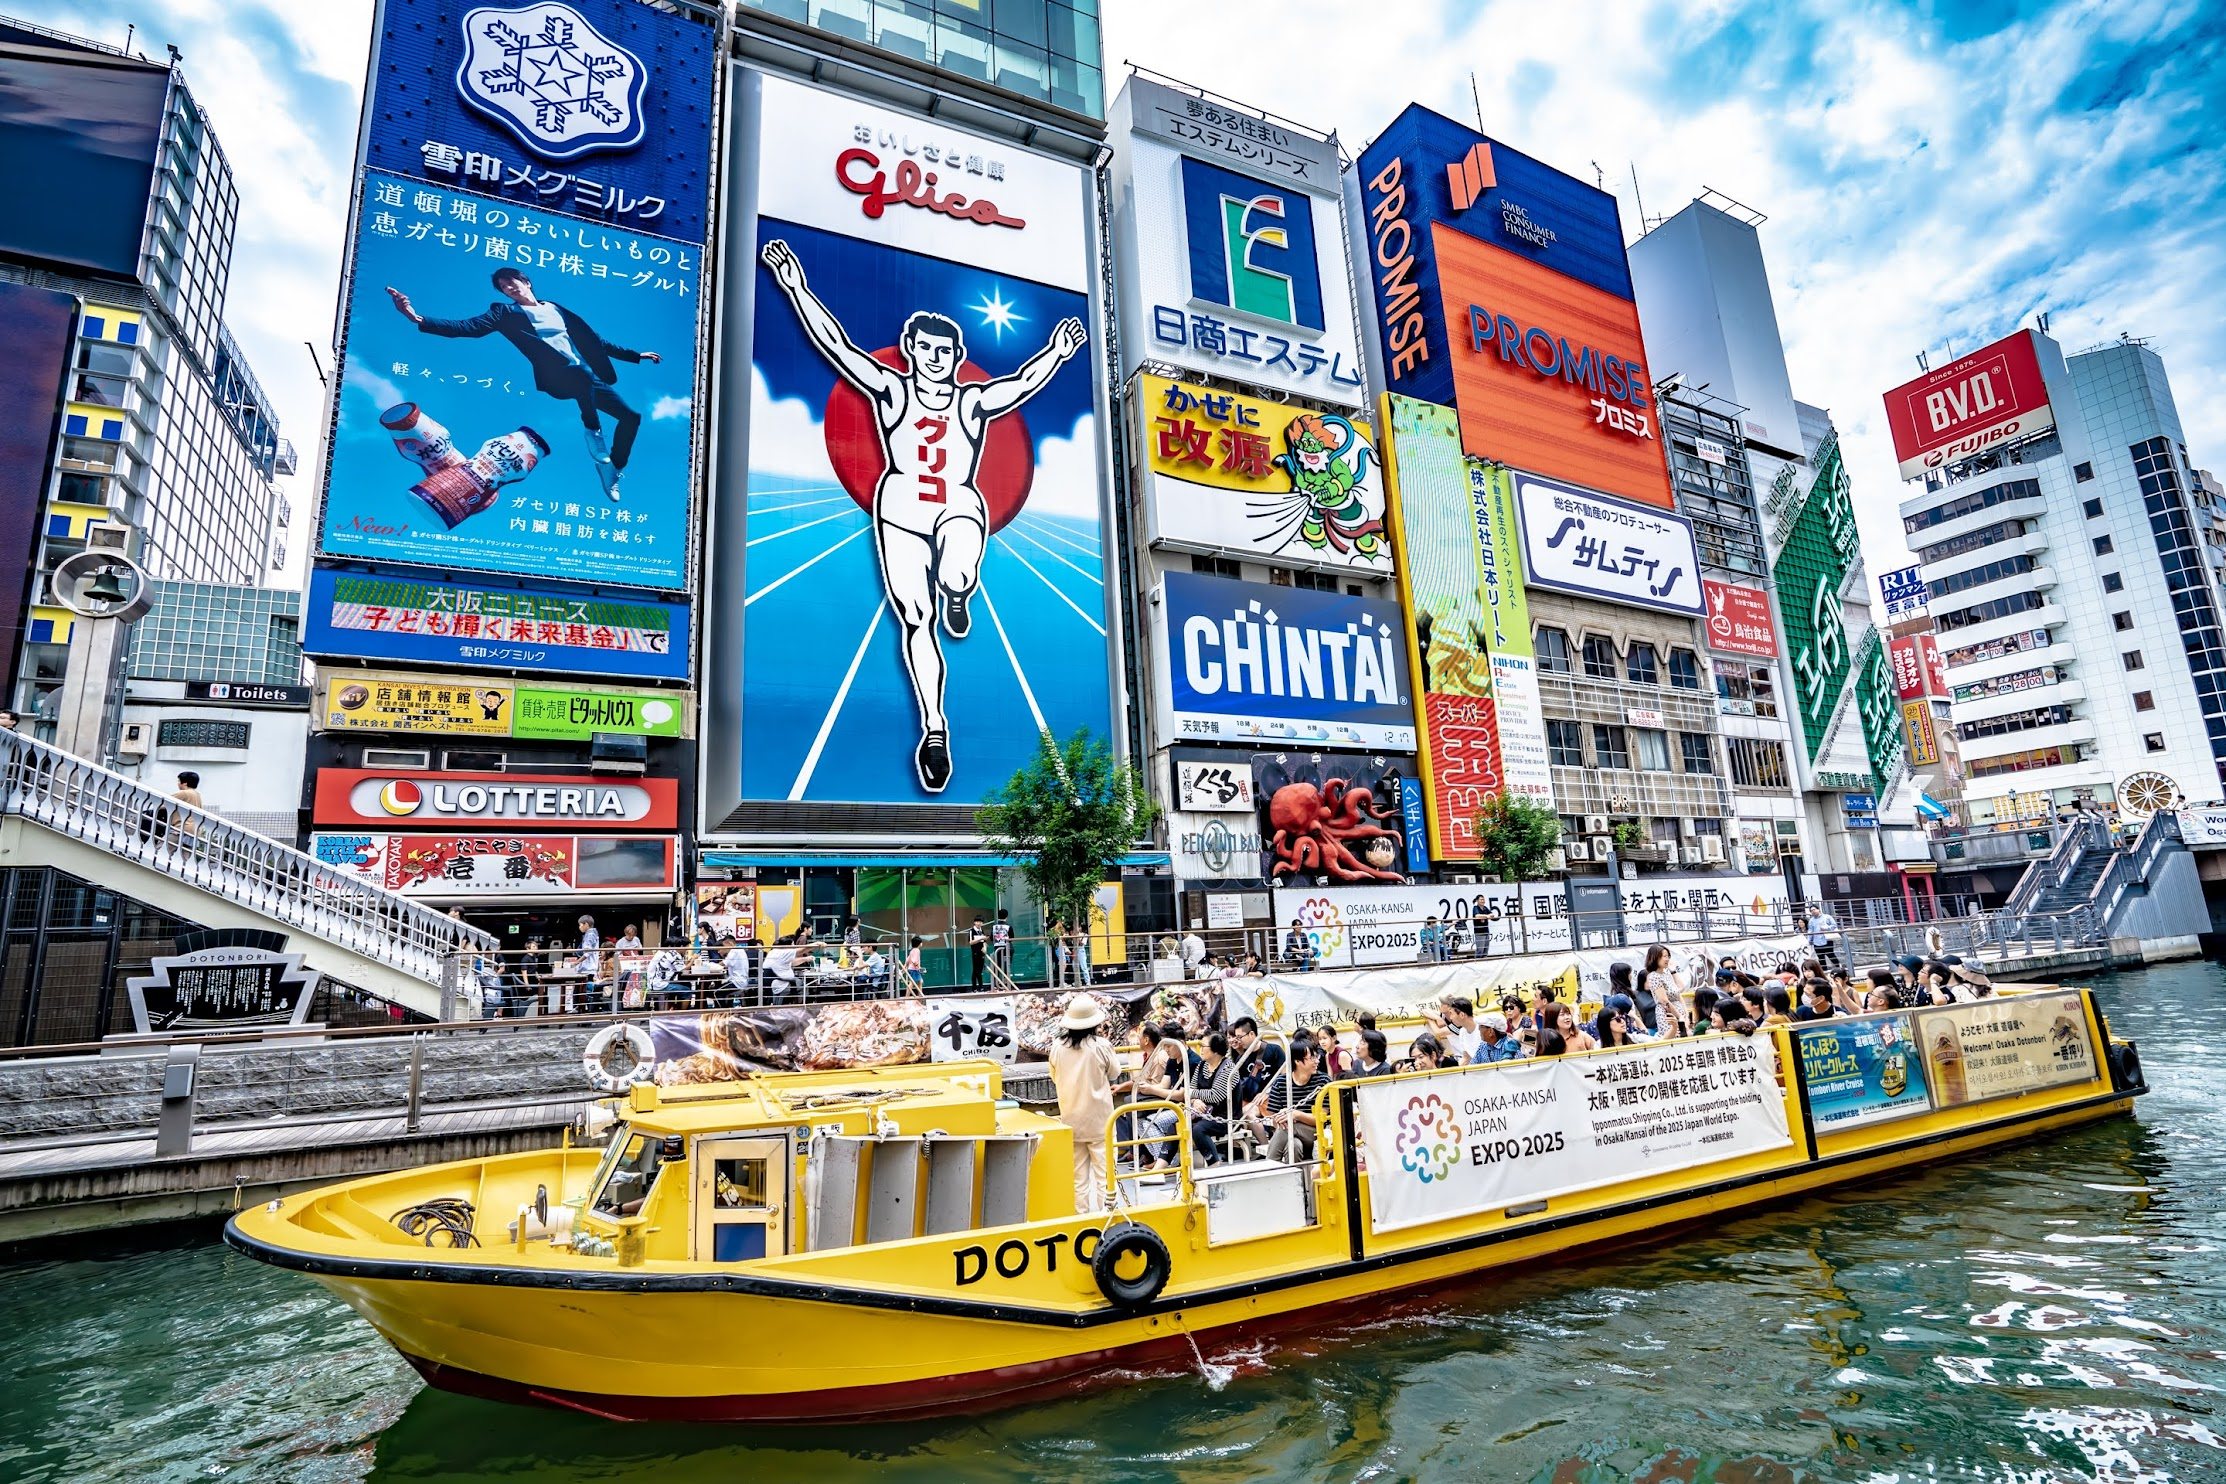 Dotonbori Glico cruise ship2